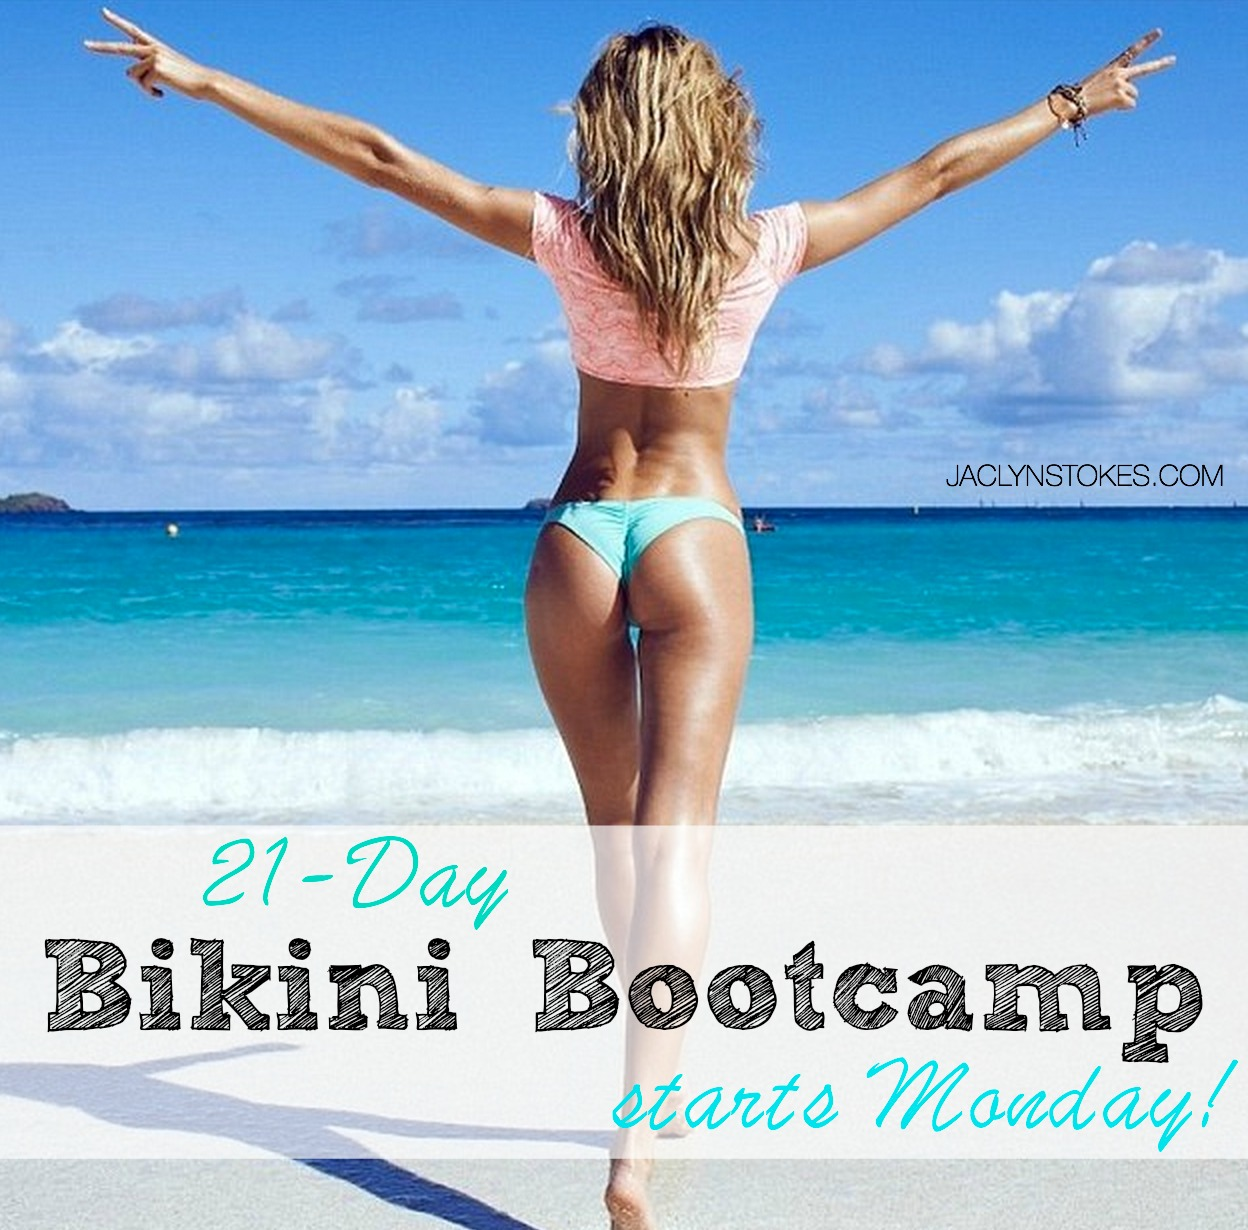 Bikini boot camp recipes